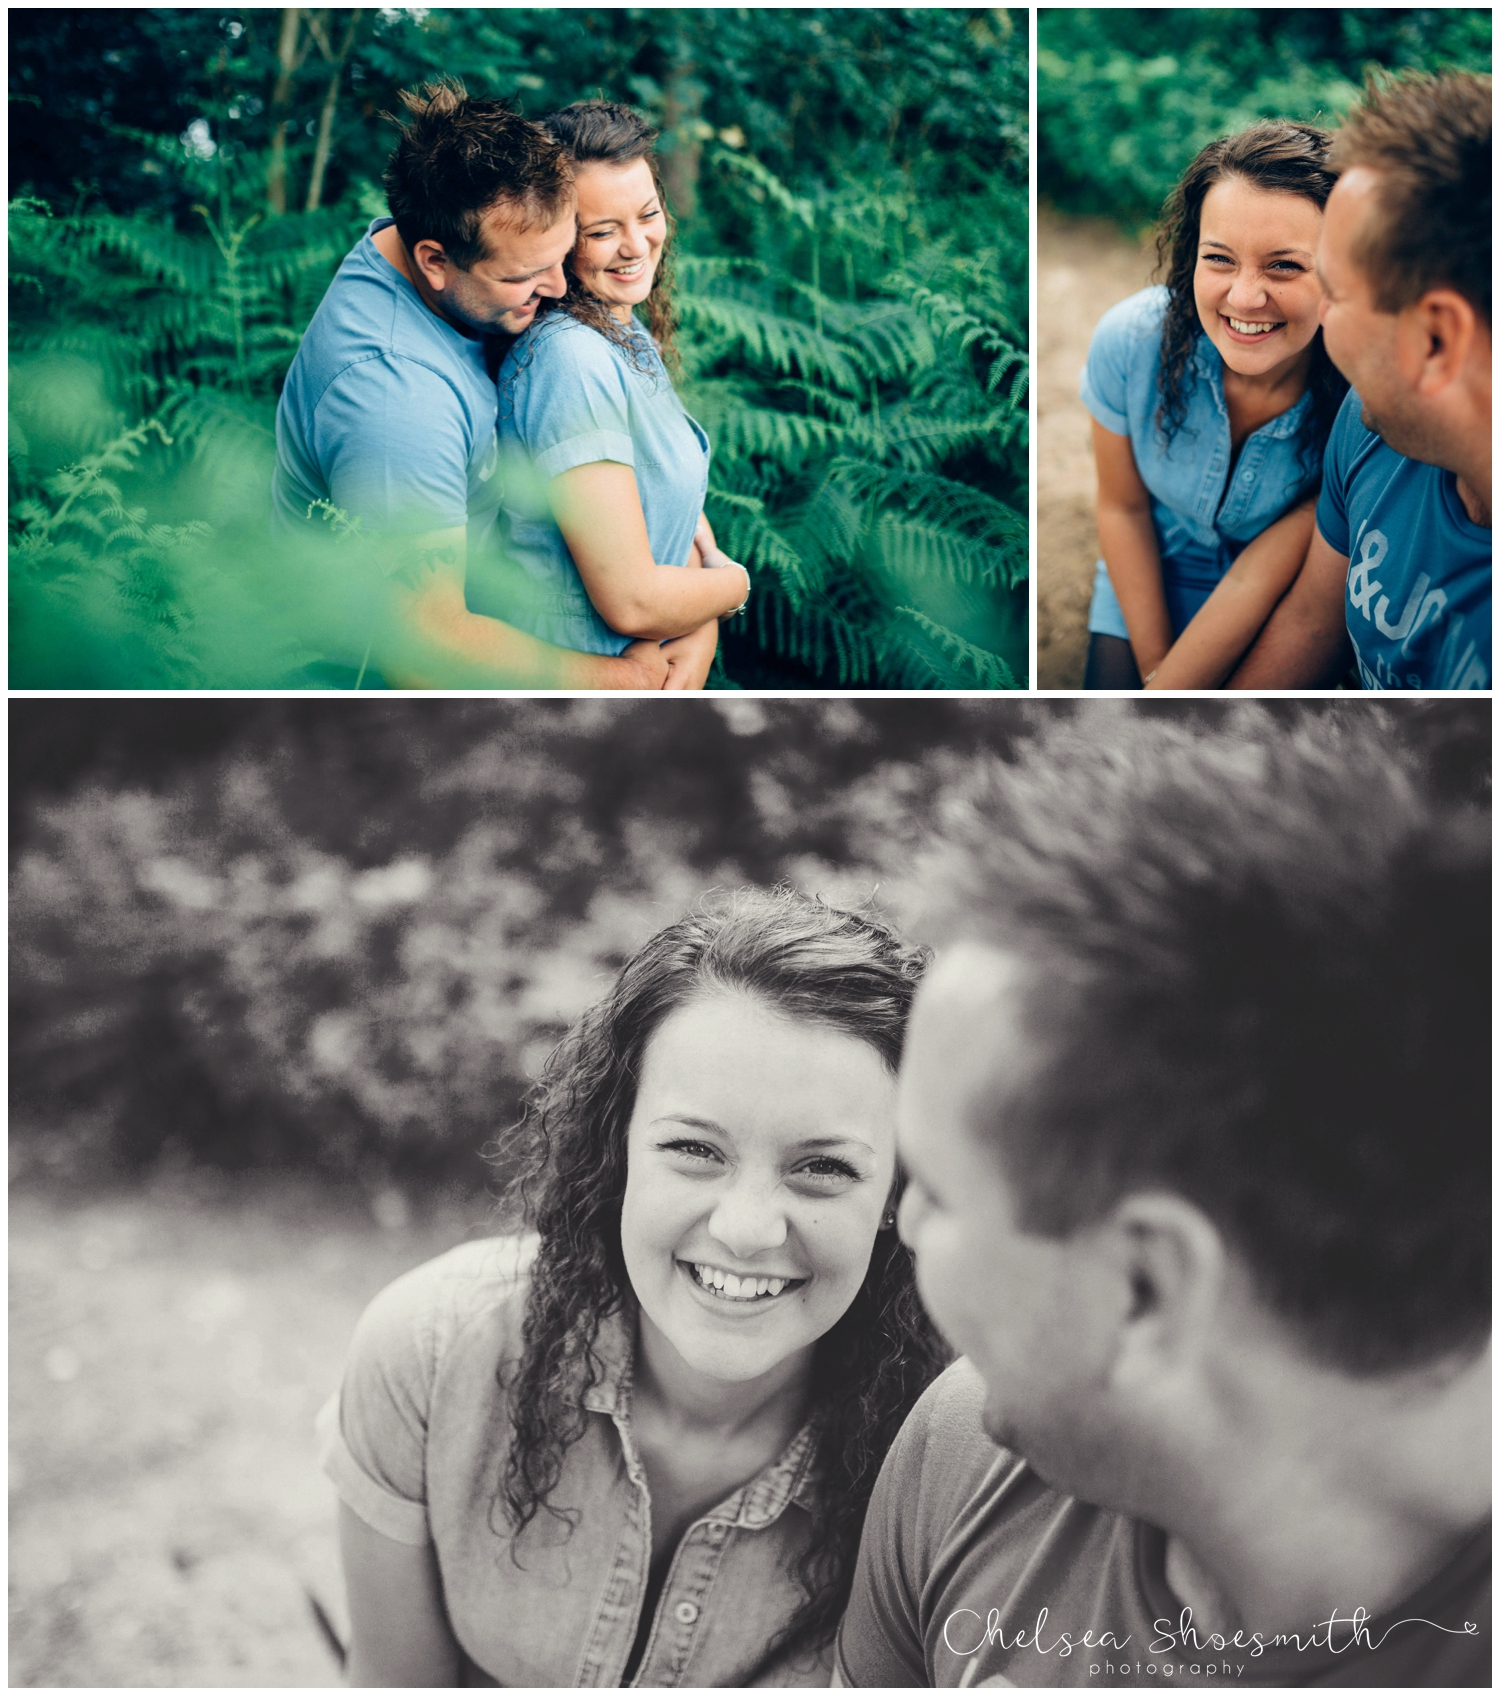 (27 of 75) Bethan & Peter Engagement Shoot Cheshire, Delamere Forest Chelsea Shoesmith Photography